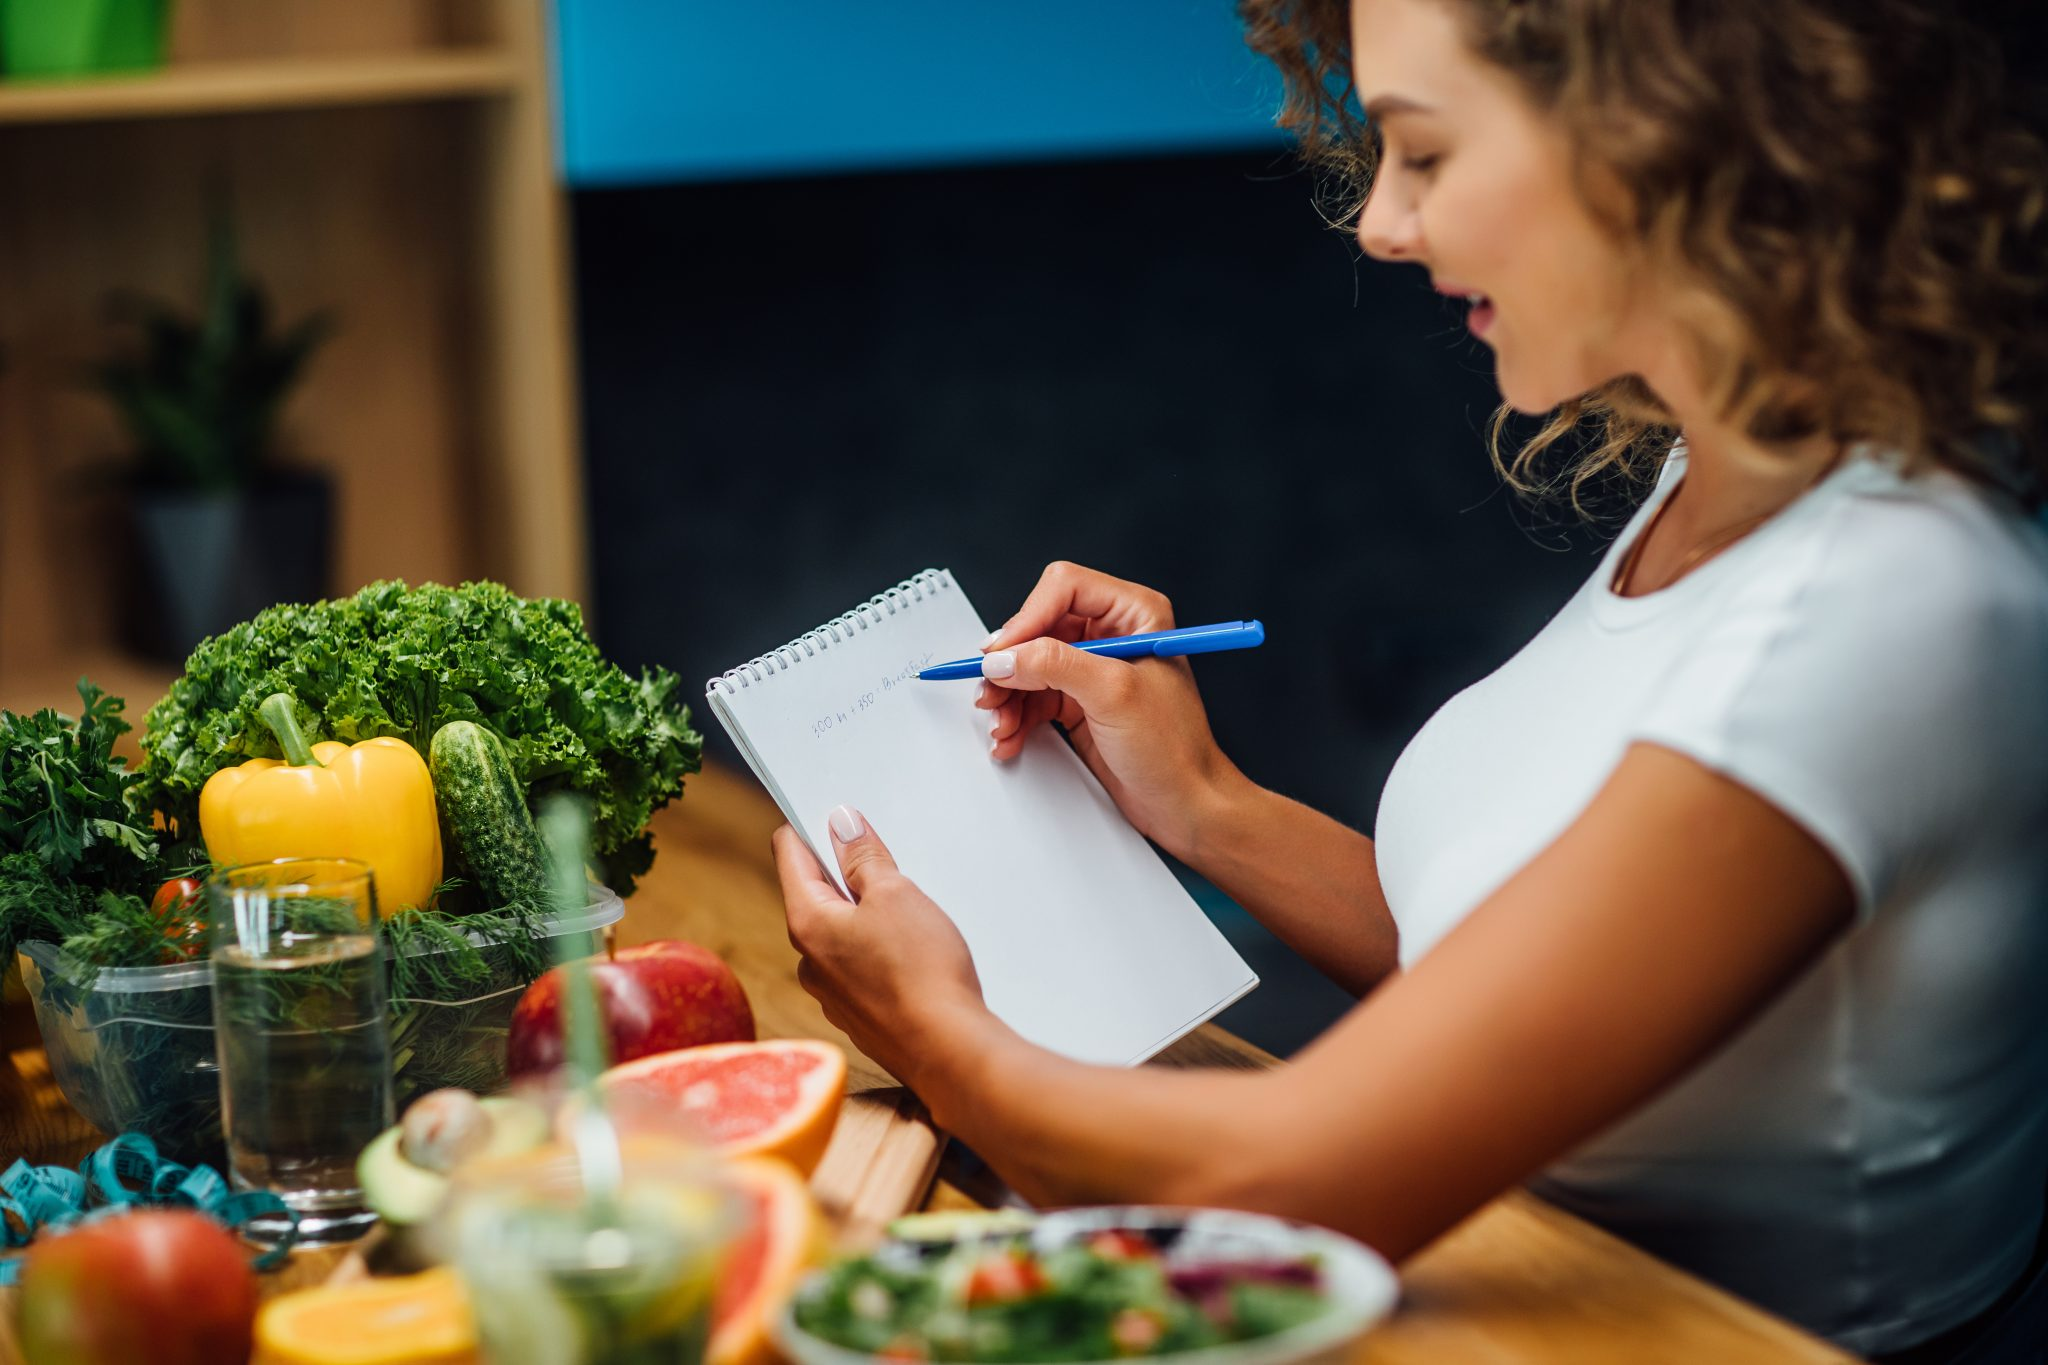 Nutritionist working in office. Doctor writing diet plan on table and using vegetables. Sport trainer.